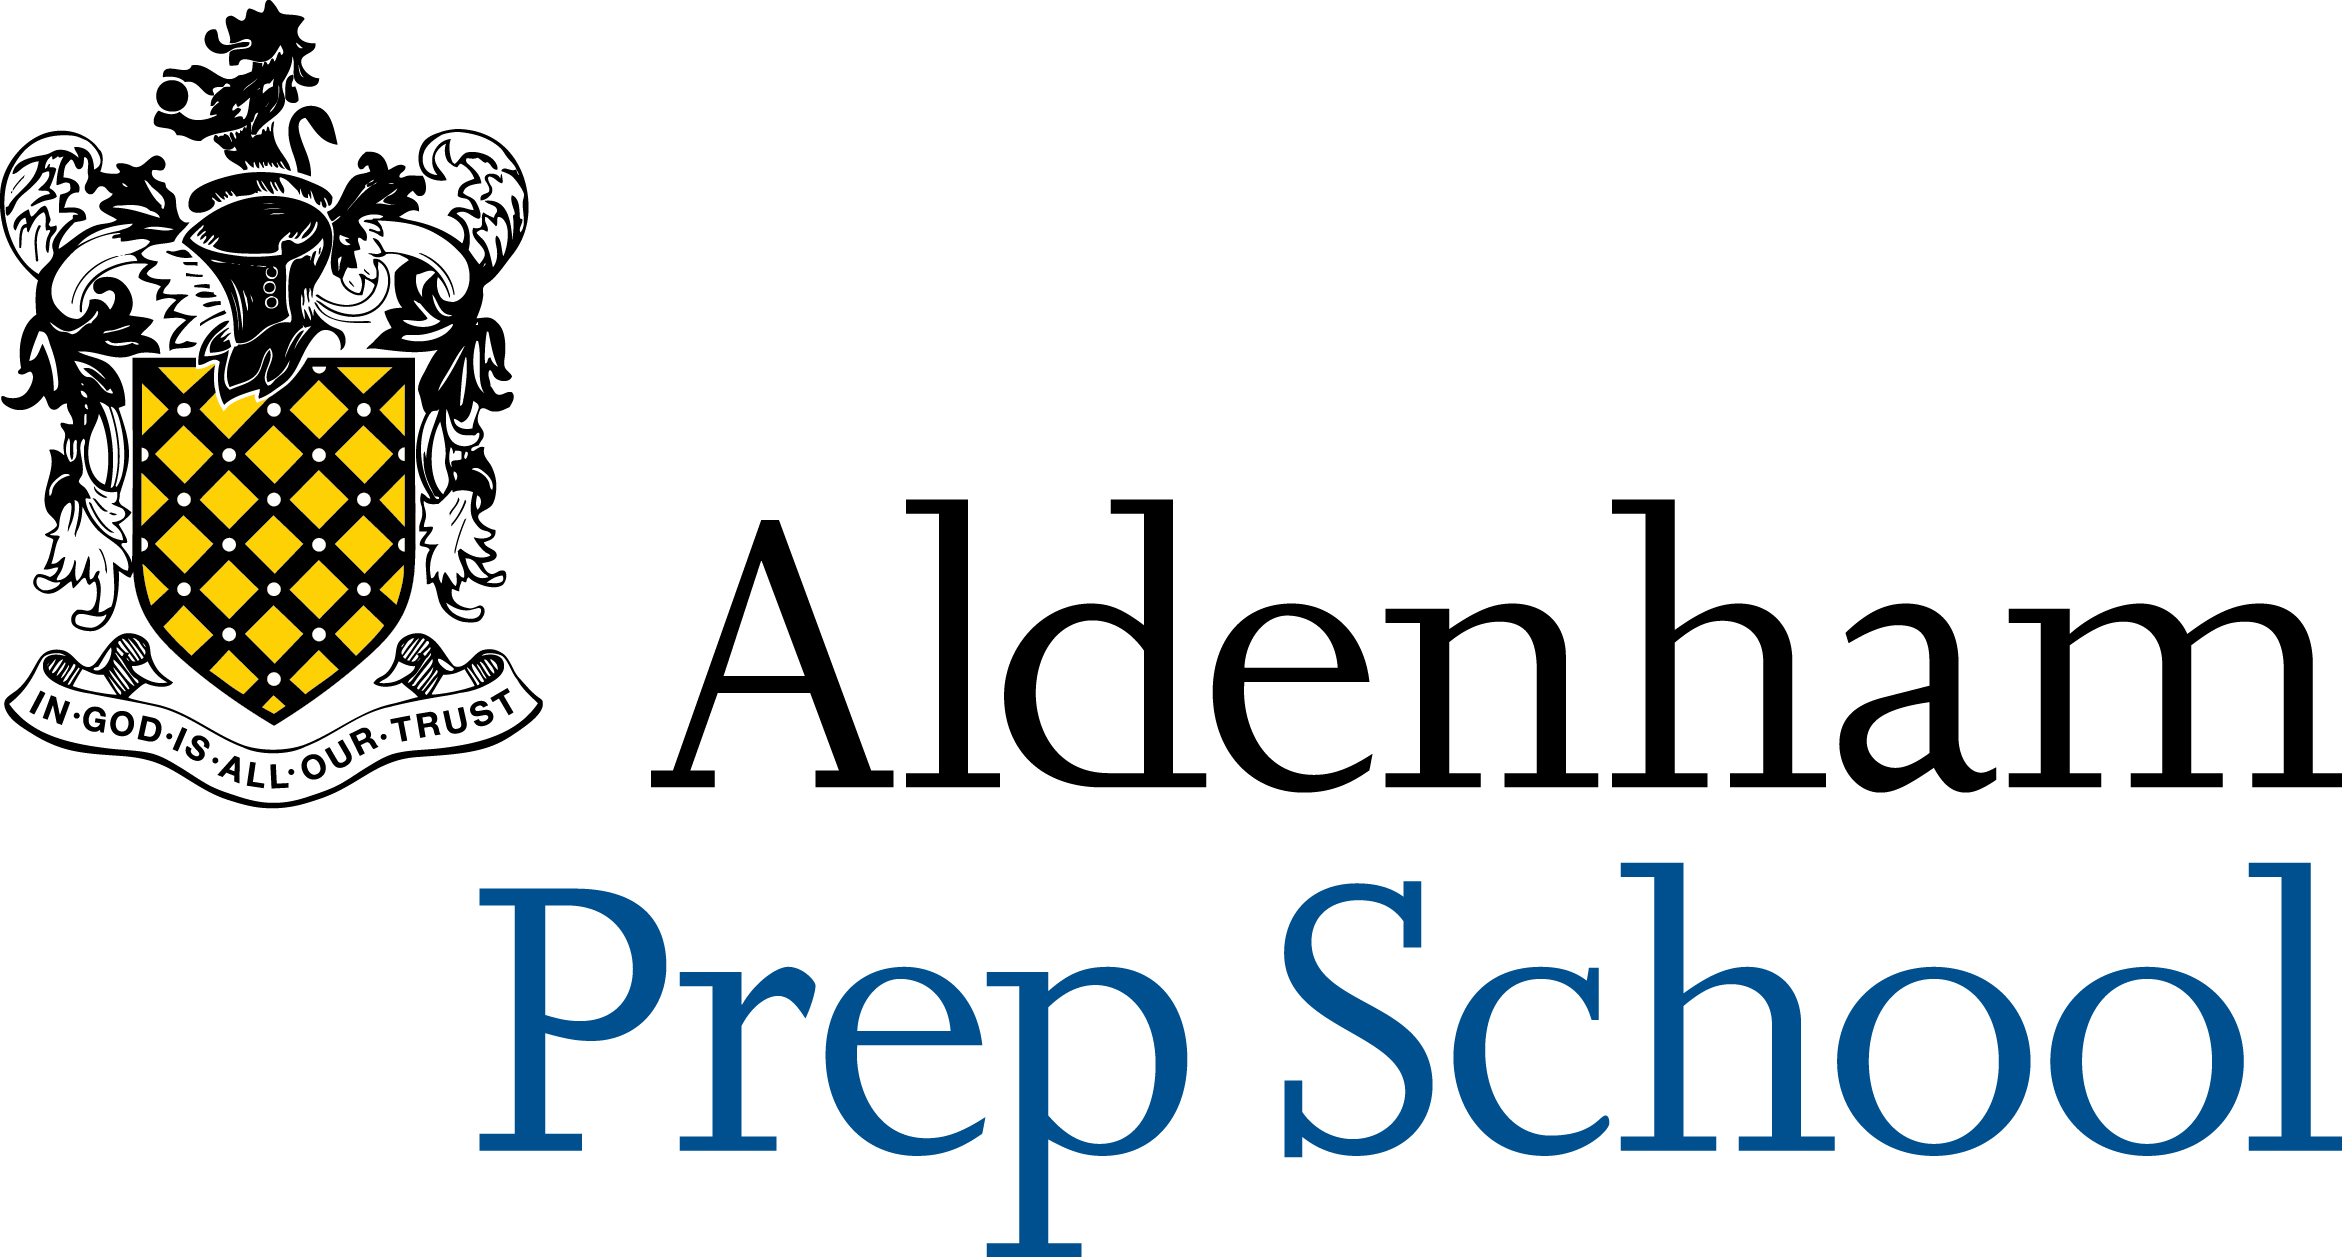 Aldenham Preparatory School